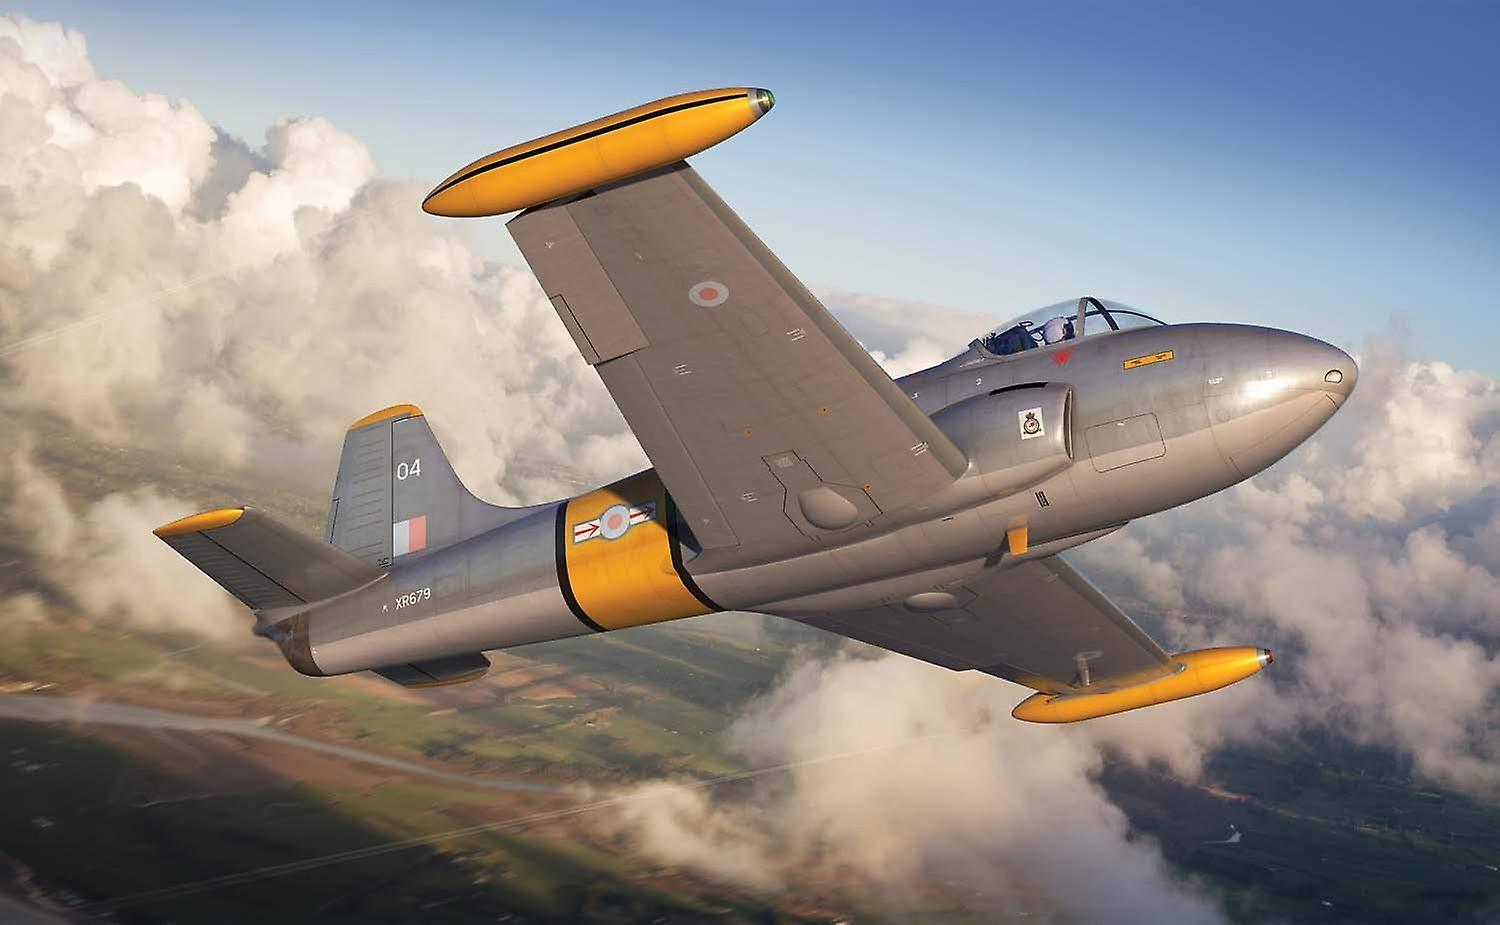 Airfix Hunting Percival Jet Provost T.4 Model